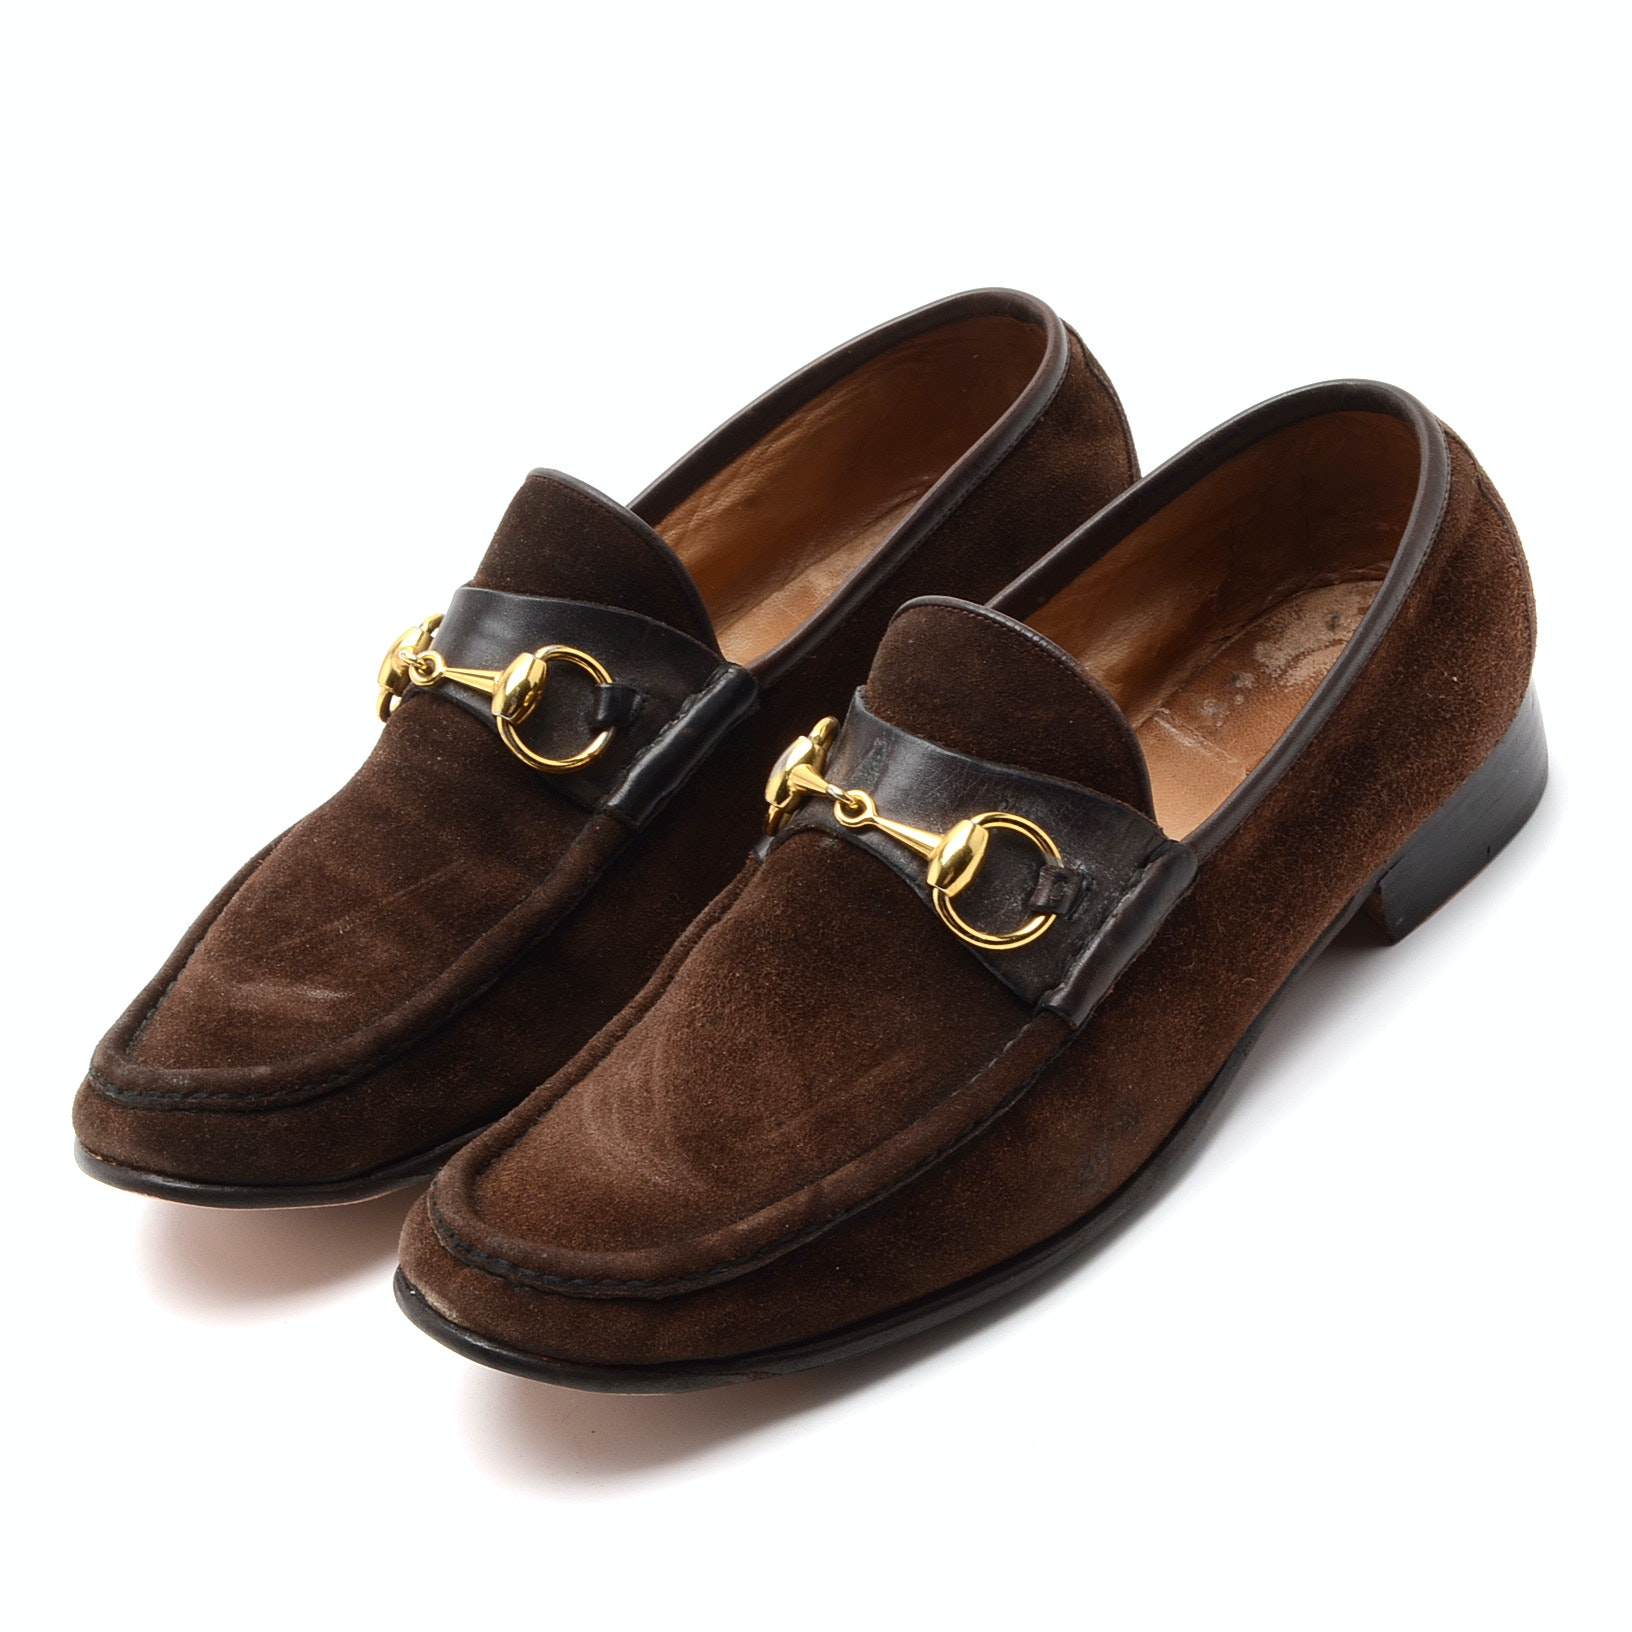 Men's Vintage Brown Suede Loafers with Horsebit Hardware